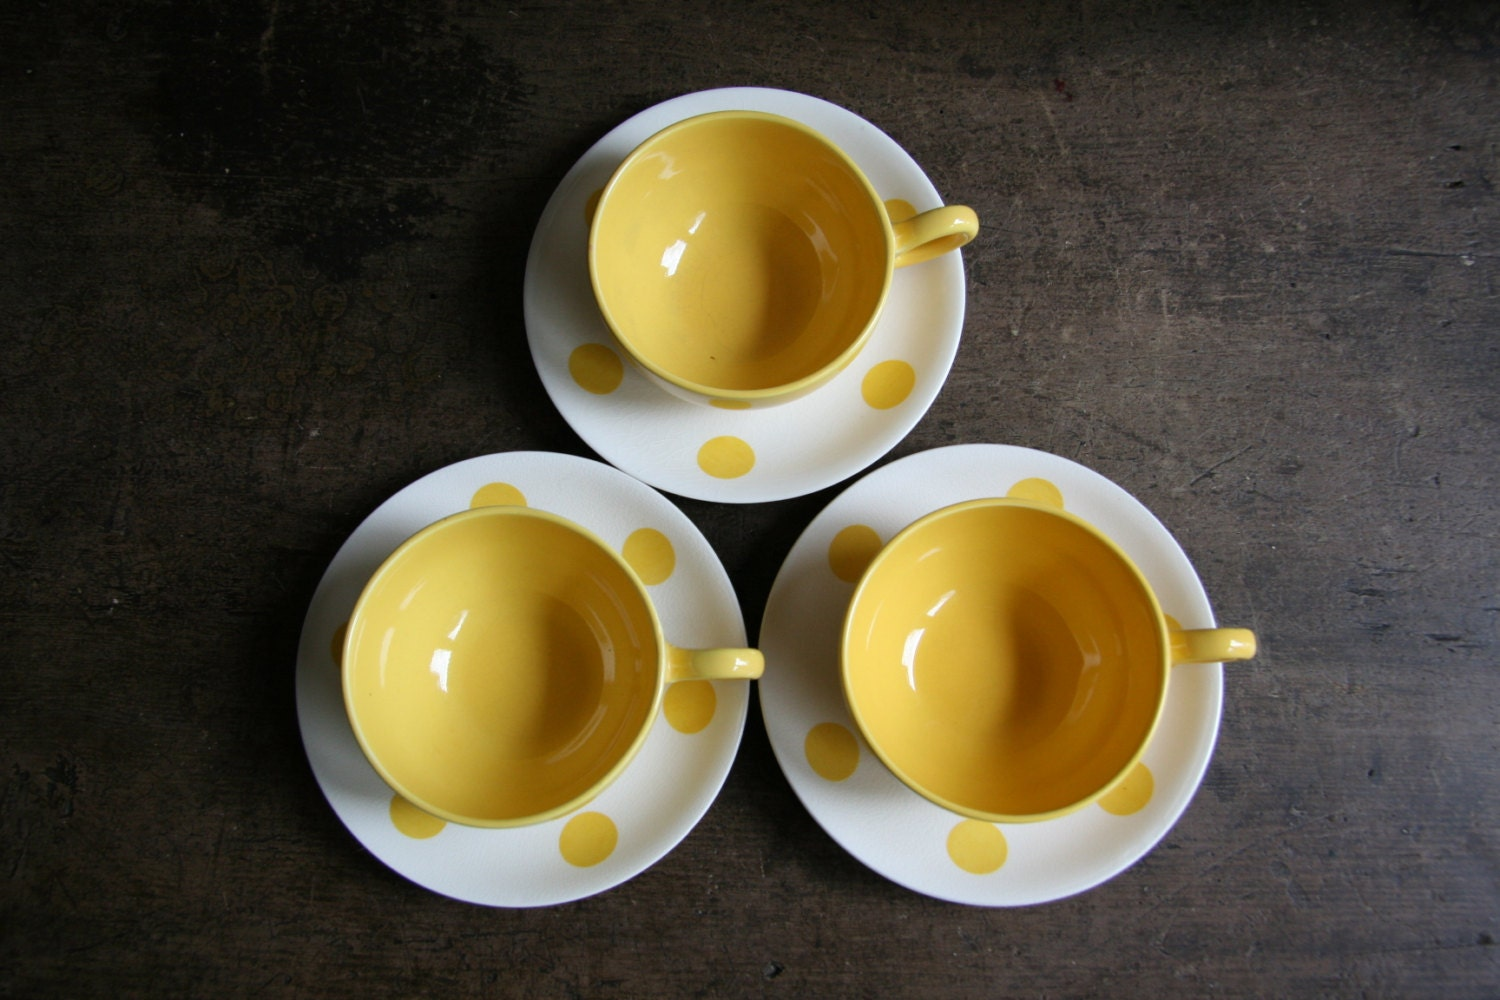 Vintage Trio of Meakin Sol Polka Dot Yellow & White Teacups and Saucers - Excellent Condition - FoundByHer